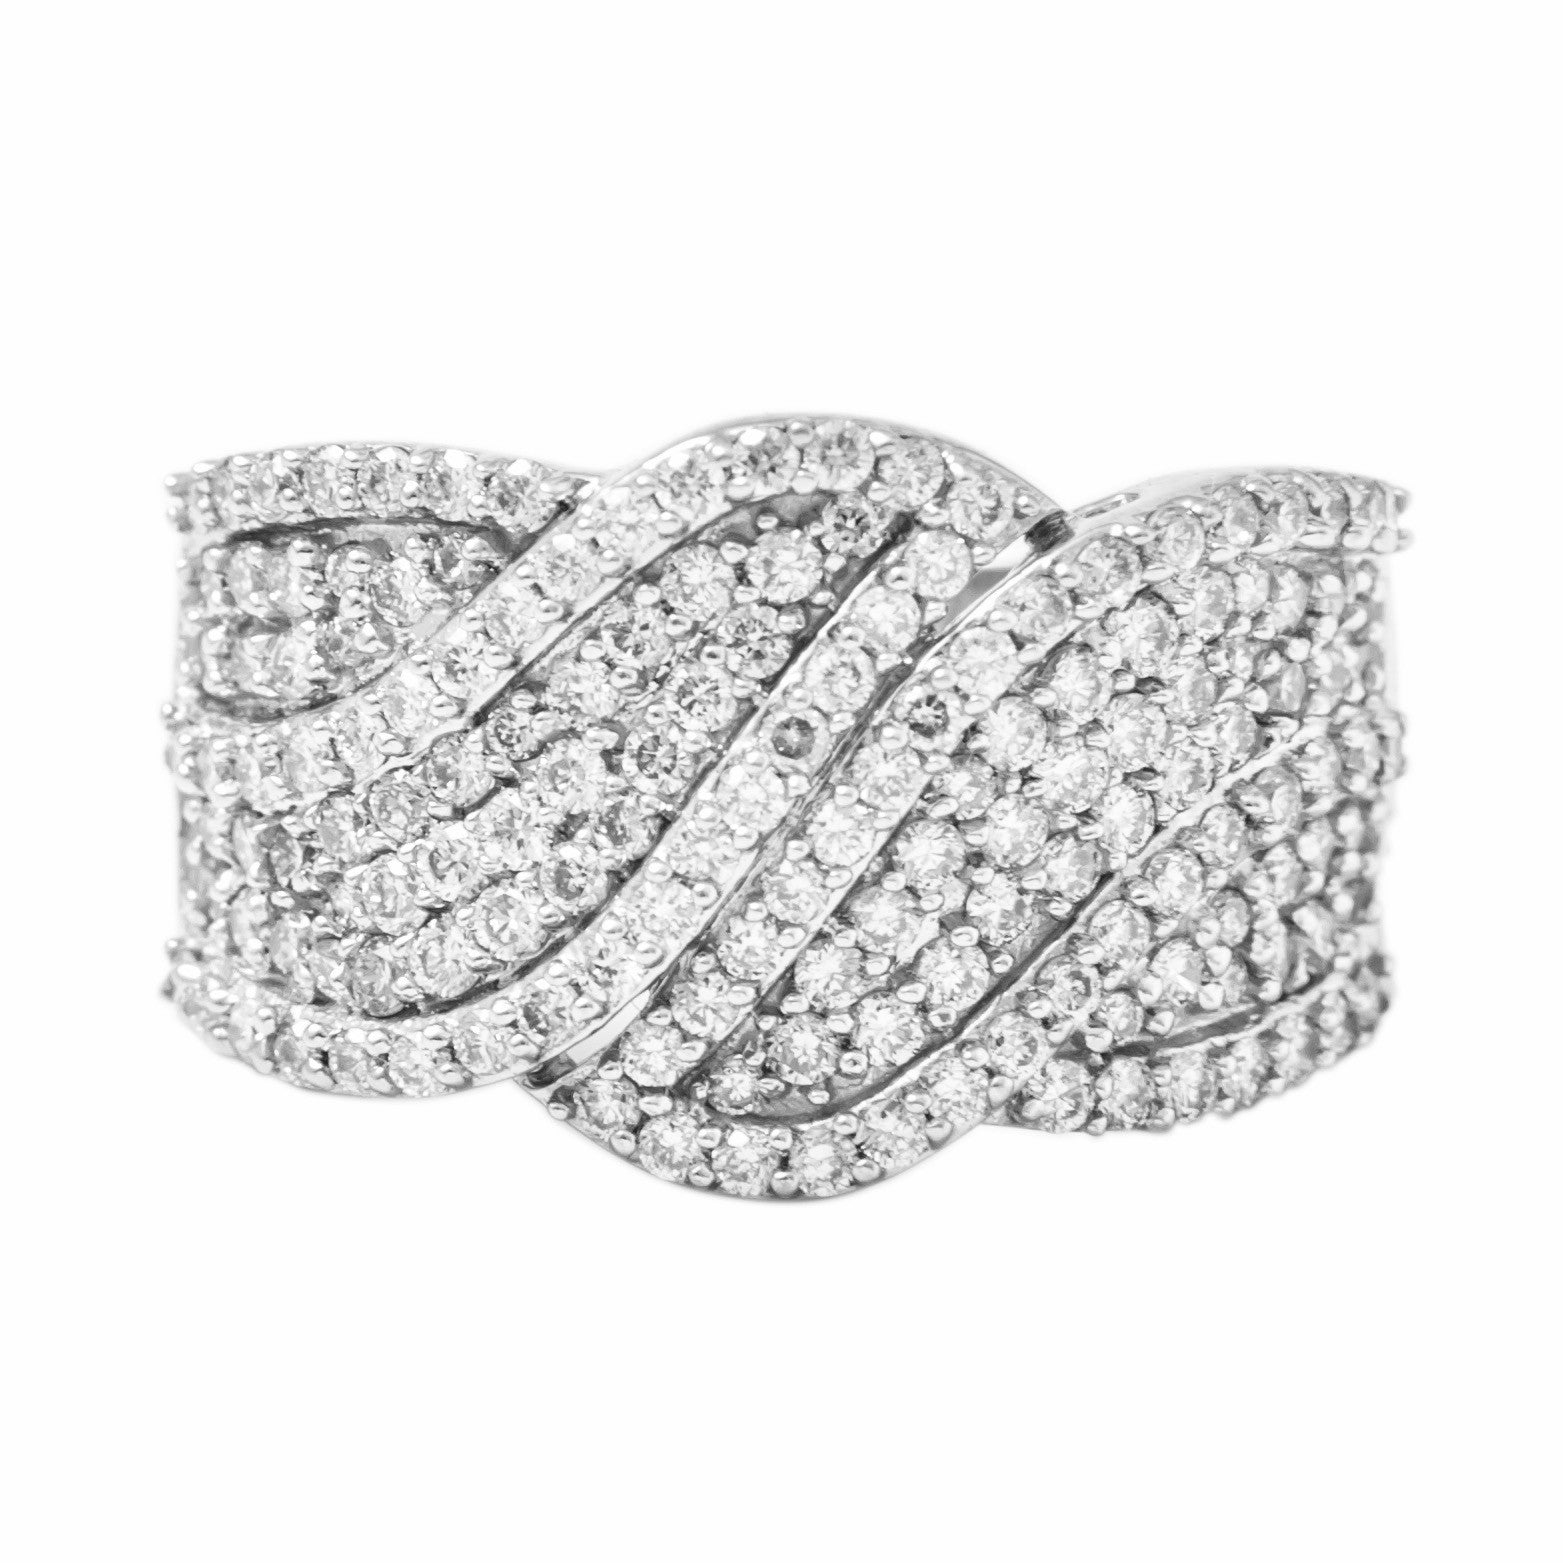 Broad Designer Bridal Ring with Diamonds in Platinum SJ PTO 263 - Suranas Jewelove  - 3